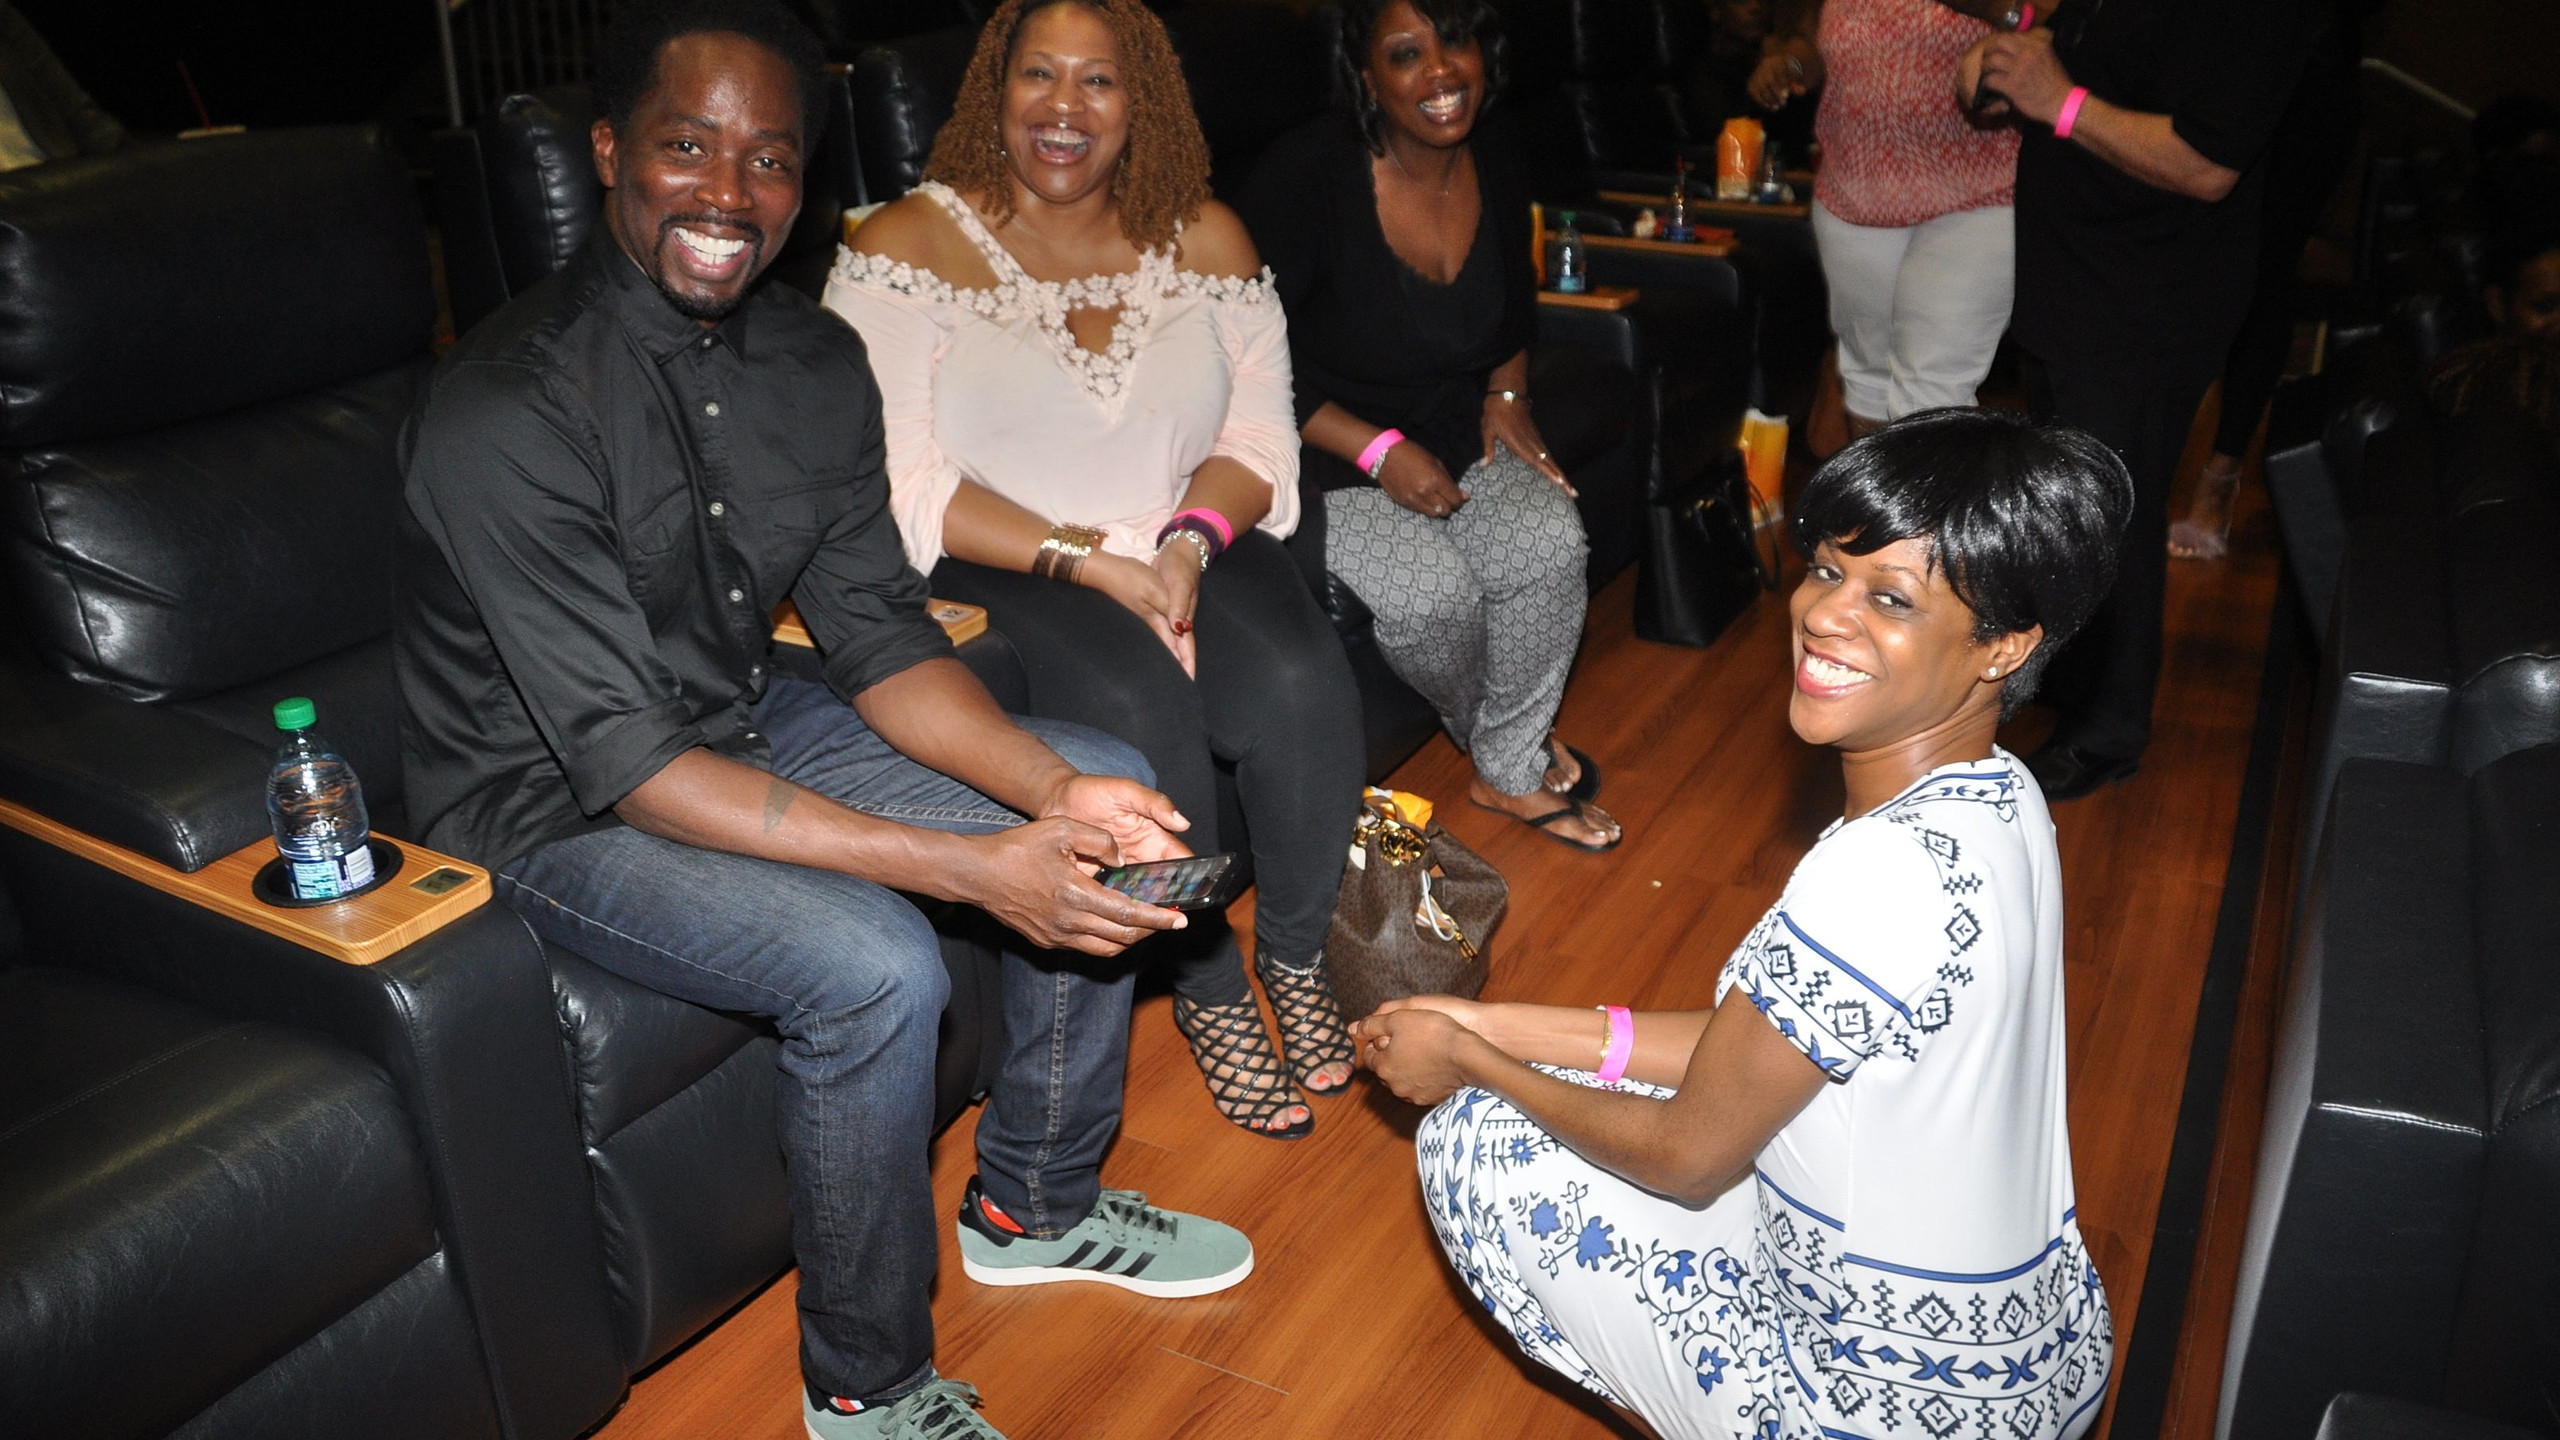 Harold Perrineau with fam and friends - ClawsDC